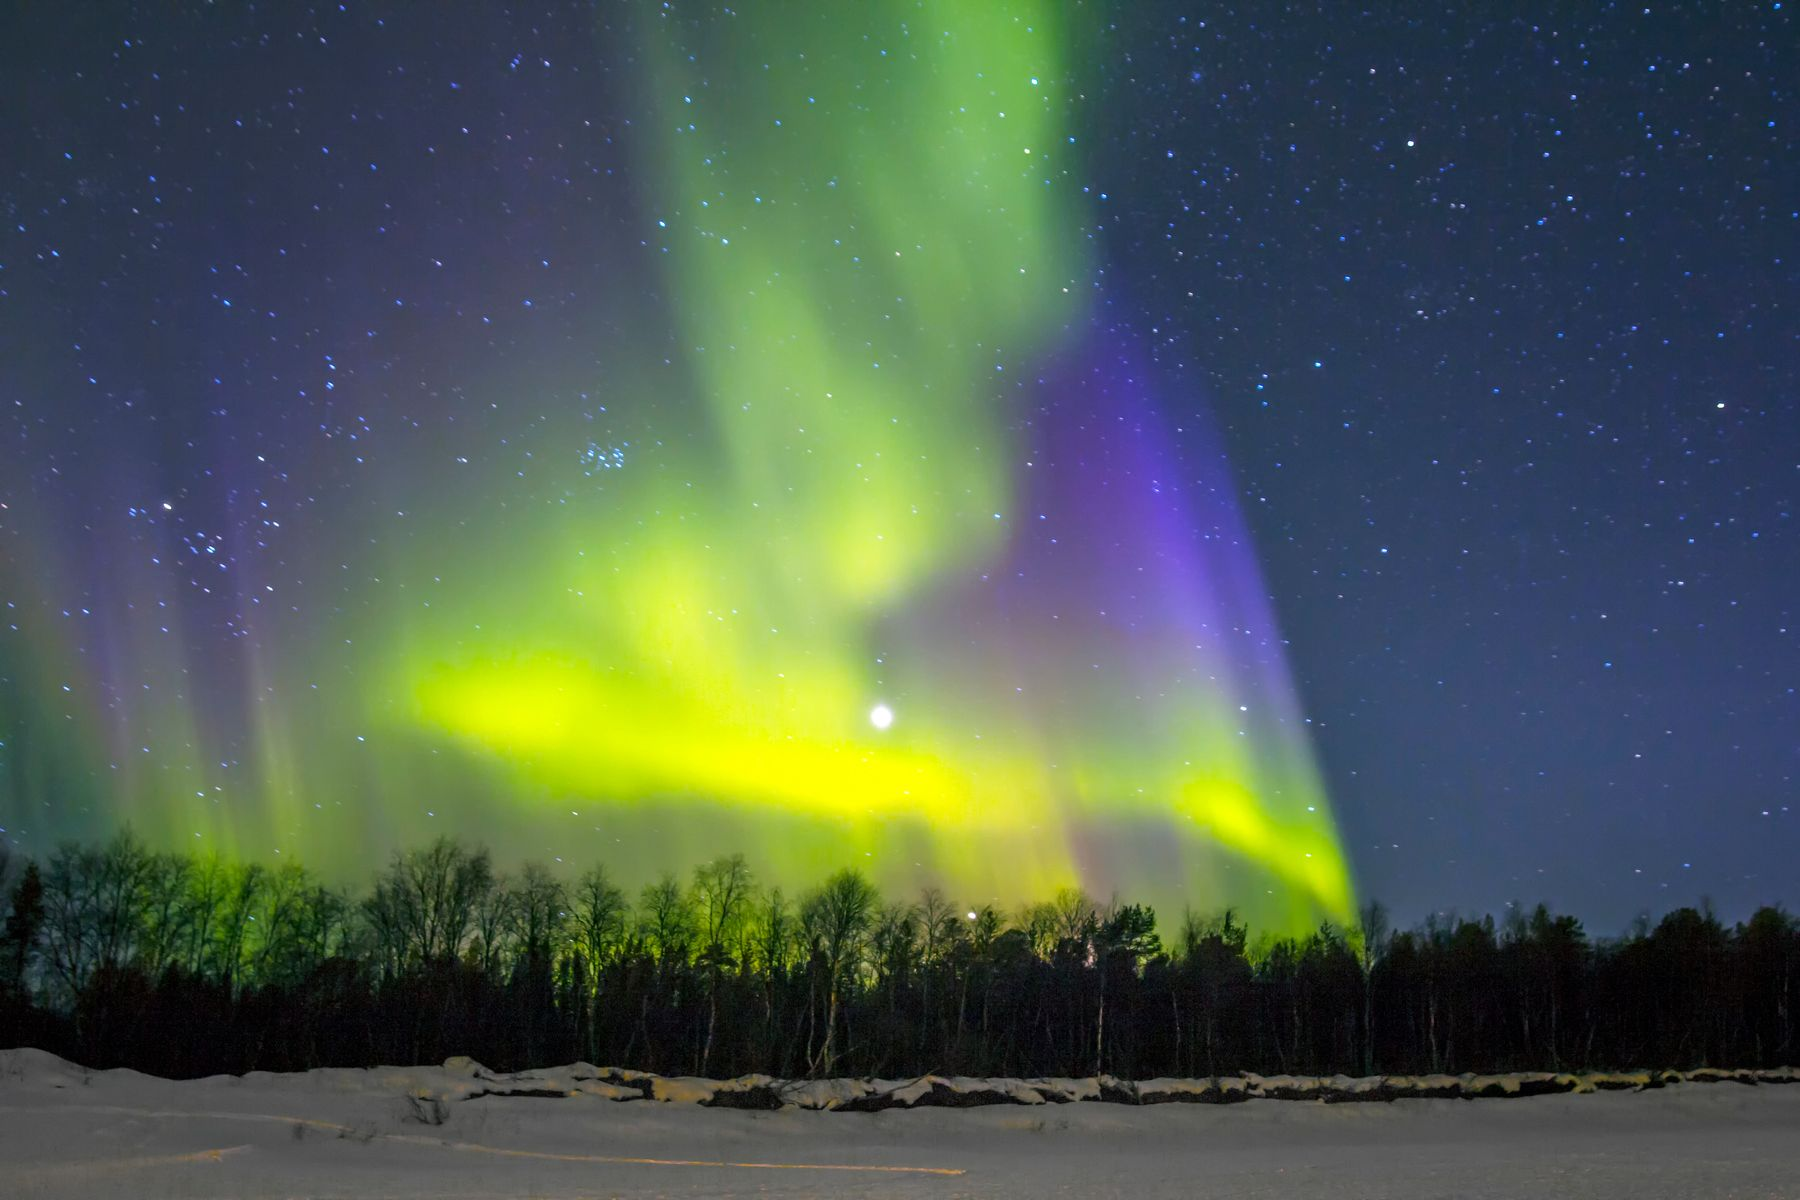 northern lights by the forest at night